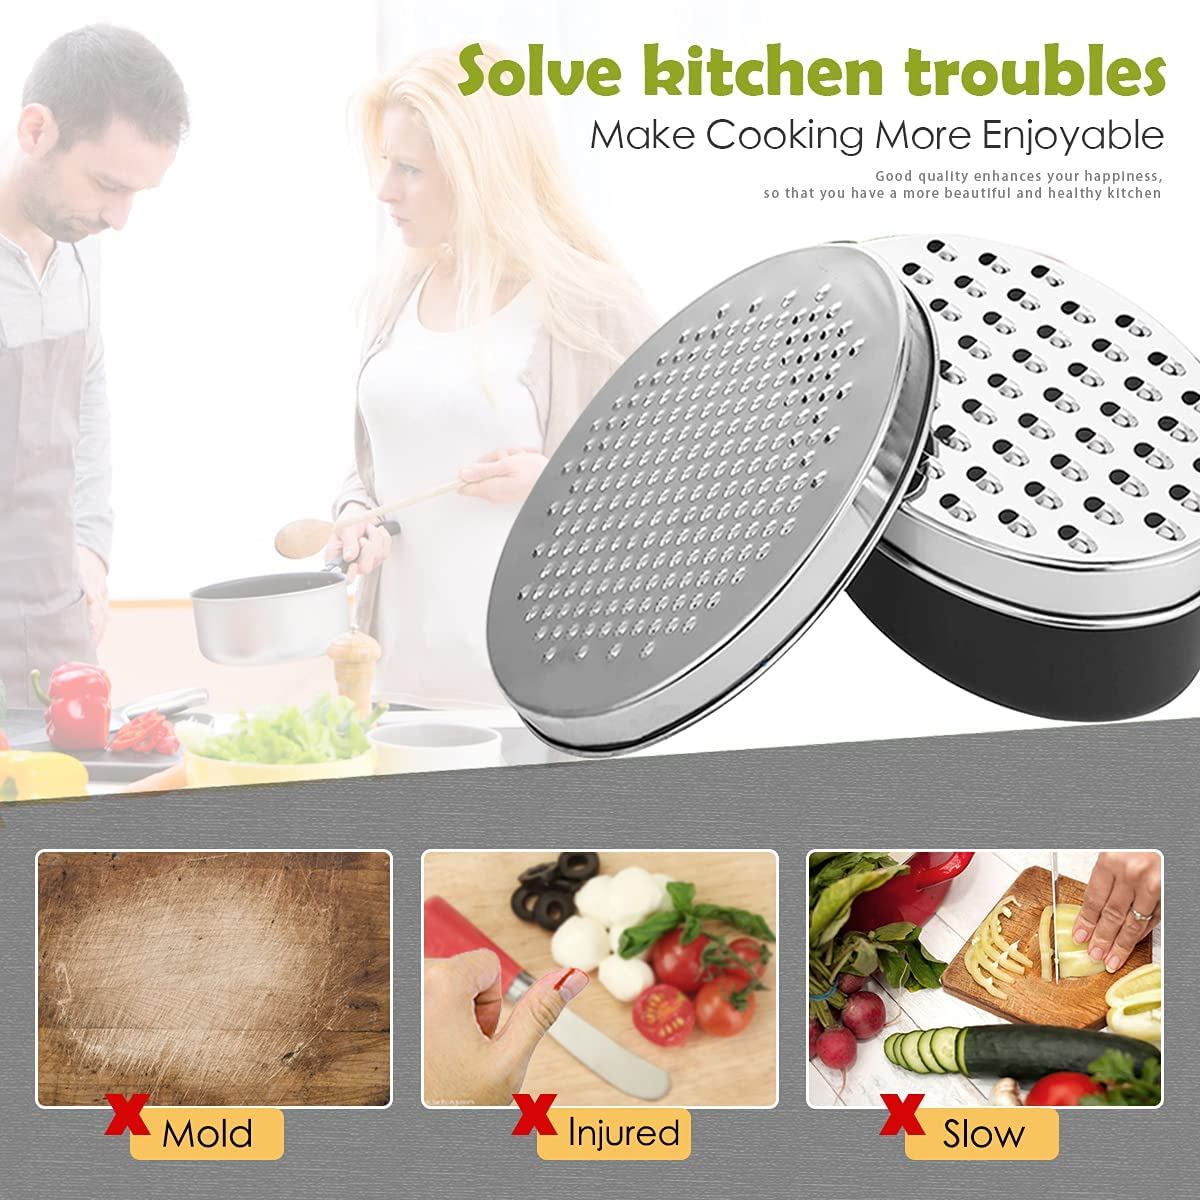 Cheese Graters Perfect for Hard Parmesan or Soft Cheddar Cheeses Chocolate HOMPO Cheese Grater with Container and Lid Vegetables etc